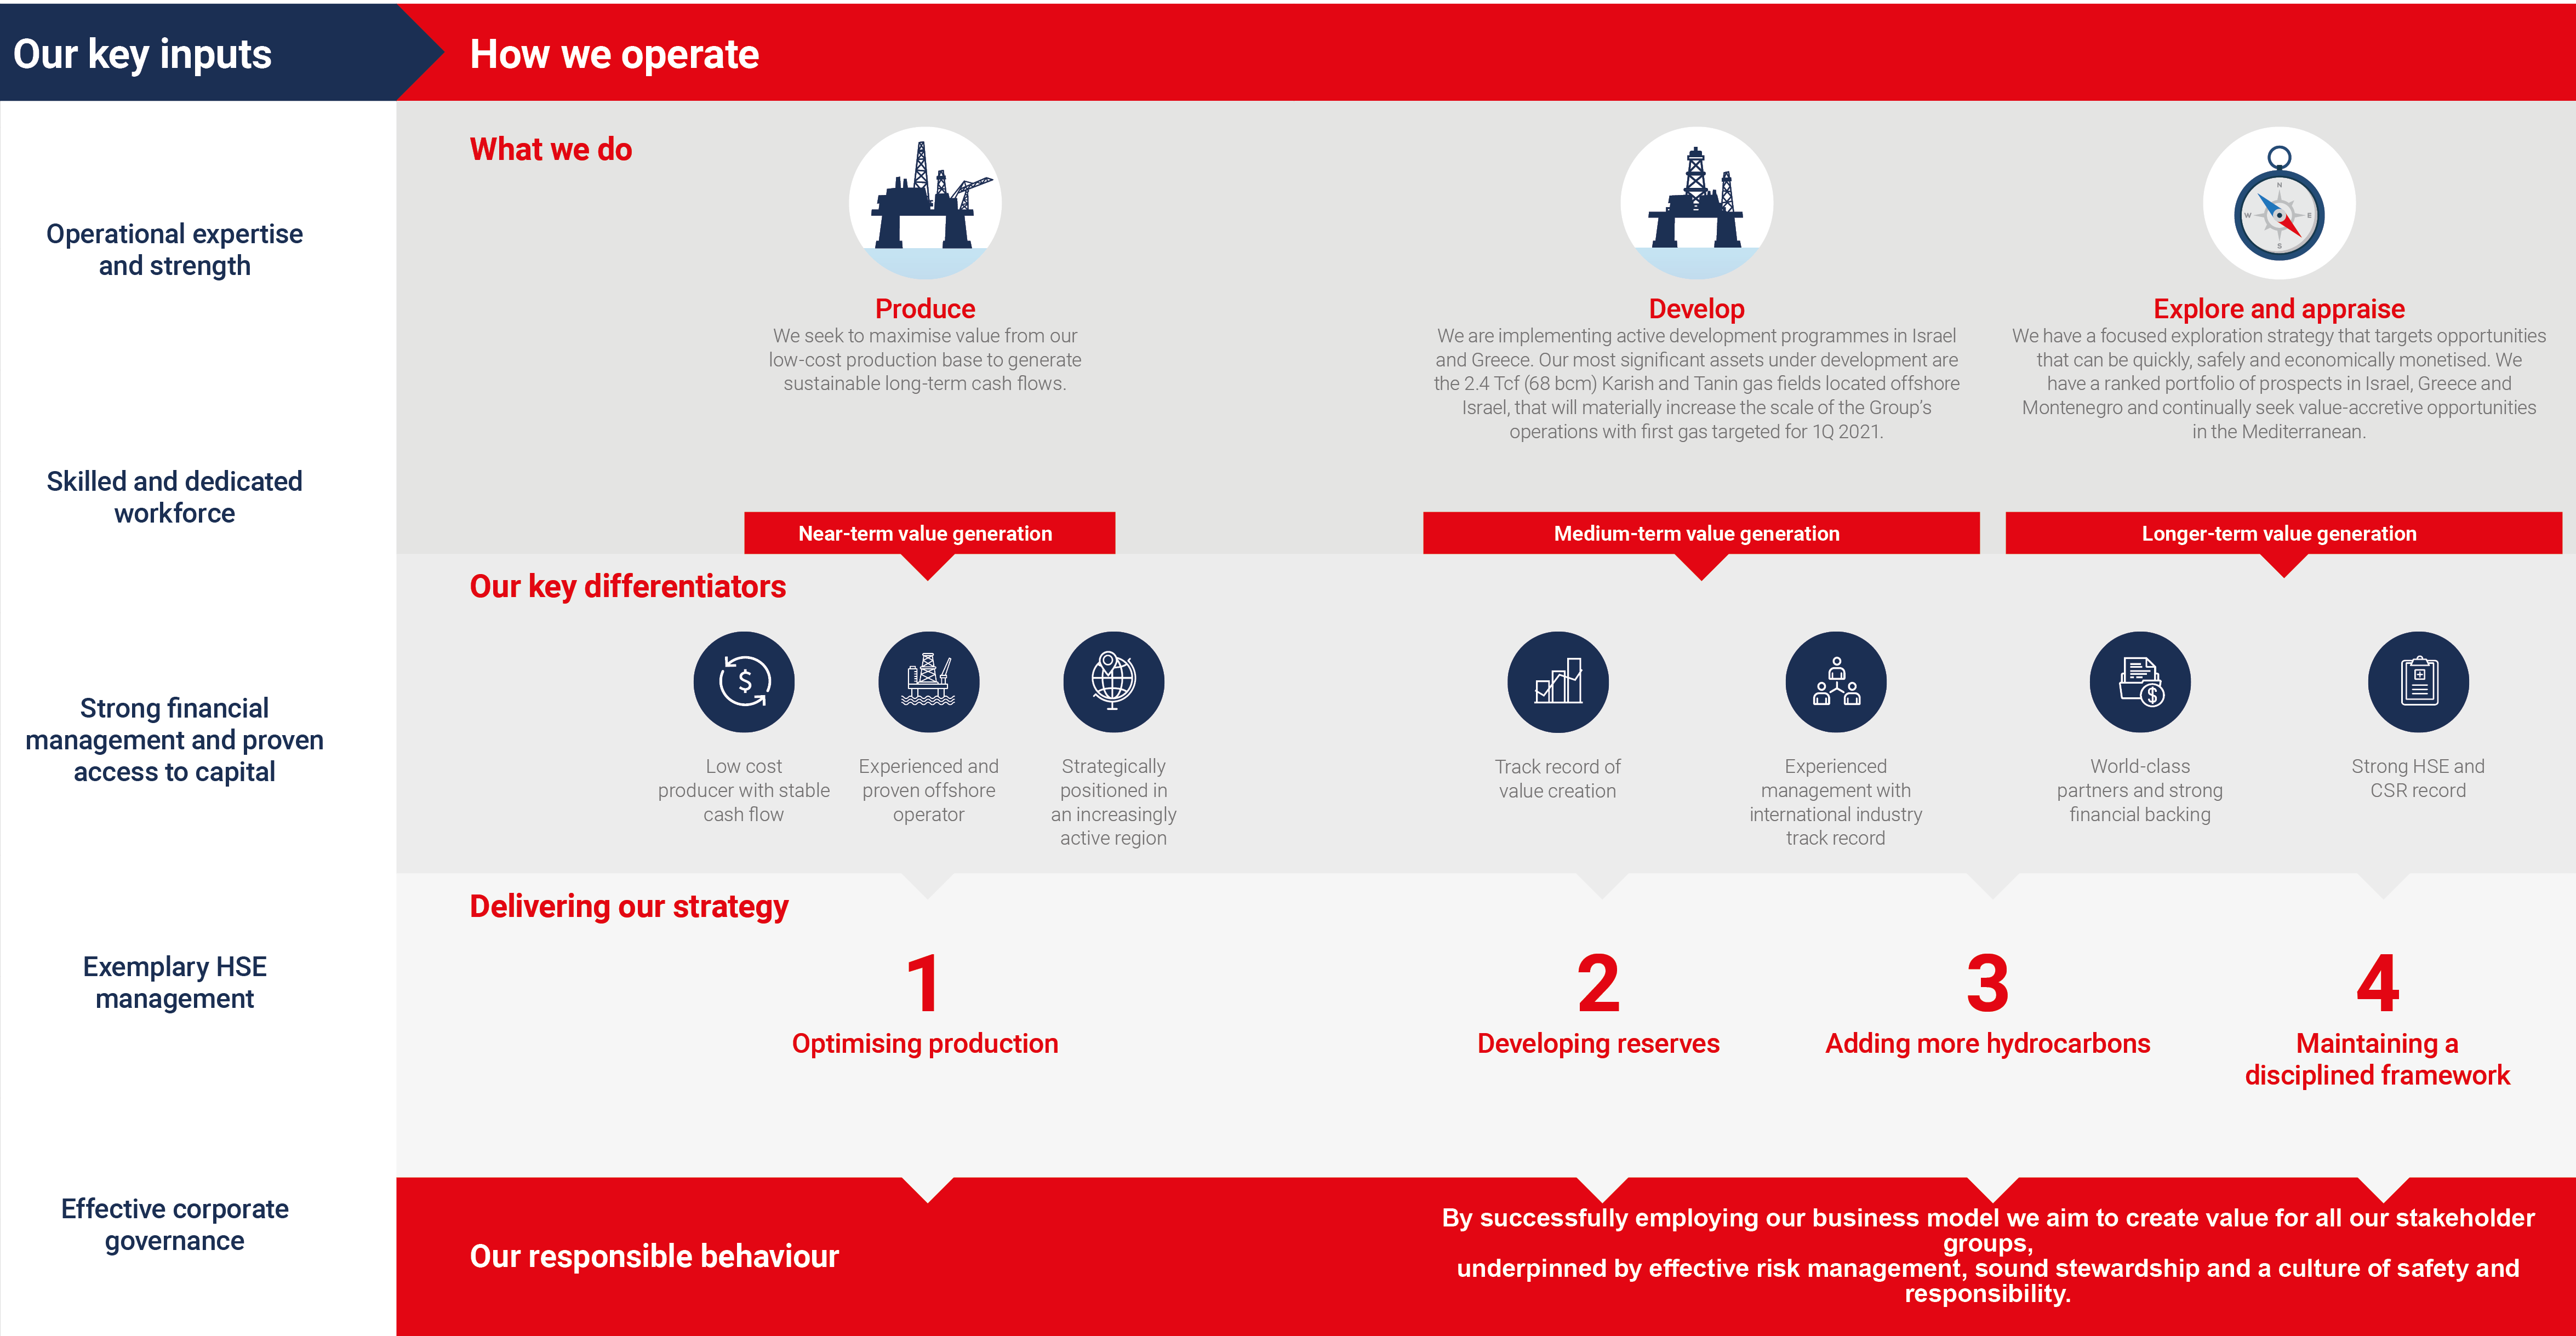 Our Strategy and Business Model | Energean Oil & Gas PLC